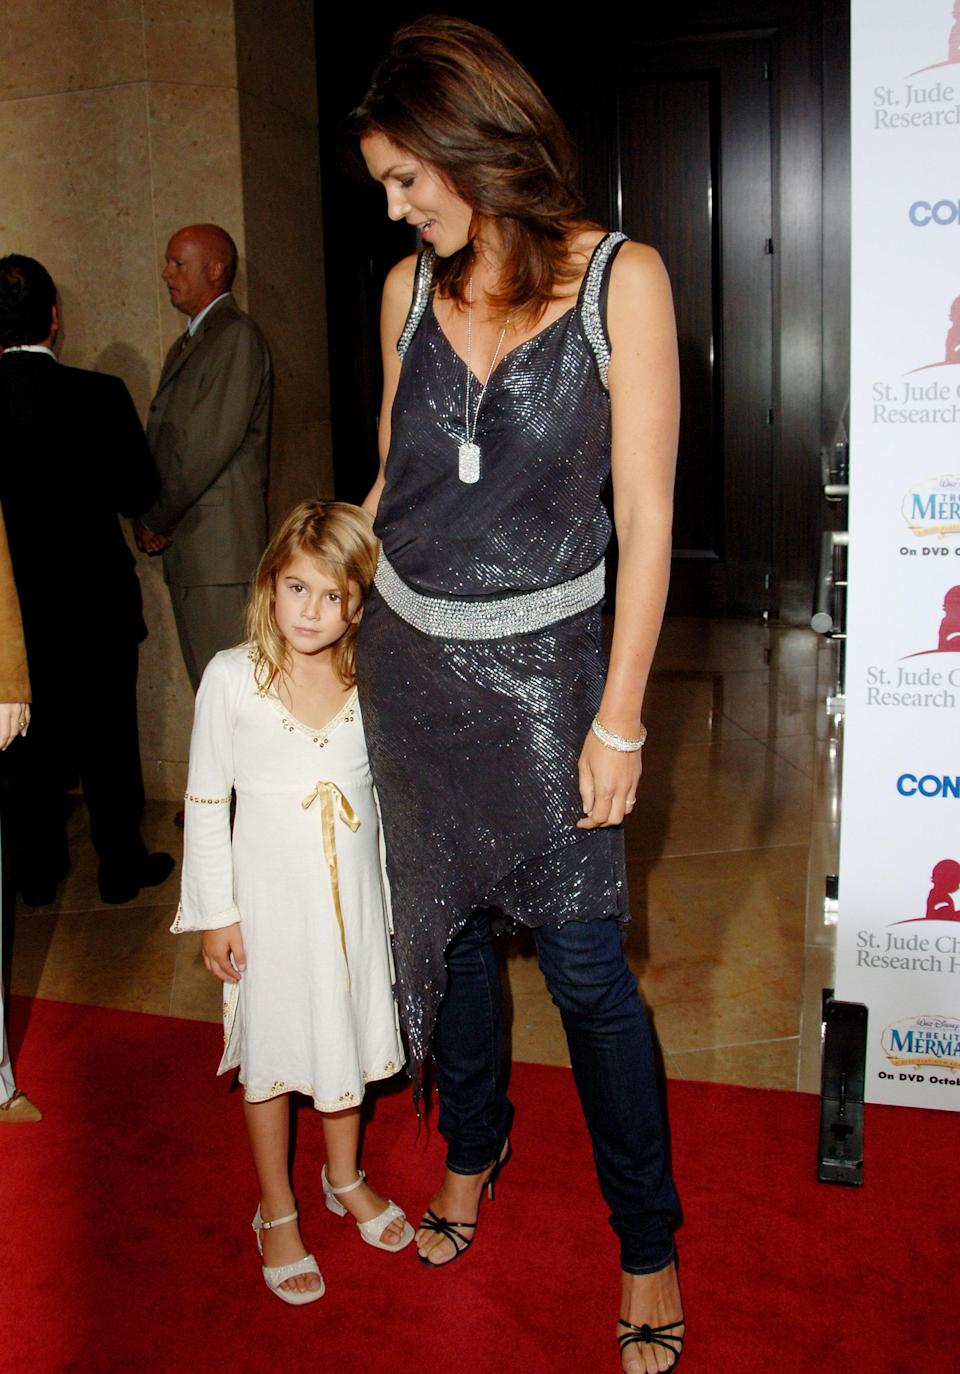 In 2006, Kaia joined her mom for a St. Jude's benefit event. Clad in an embellished white dress and sandals with the tiniest block heel, this was just a glimpse at the stylish teenager she'd become.